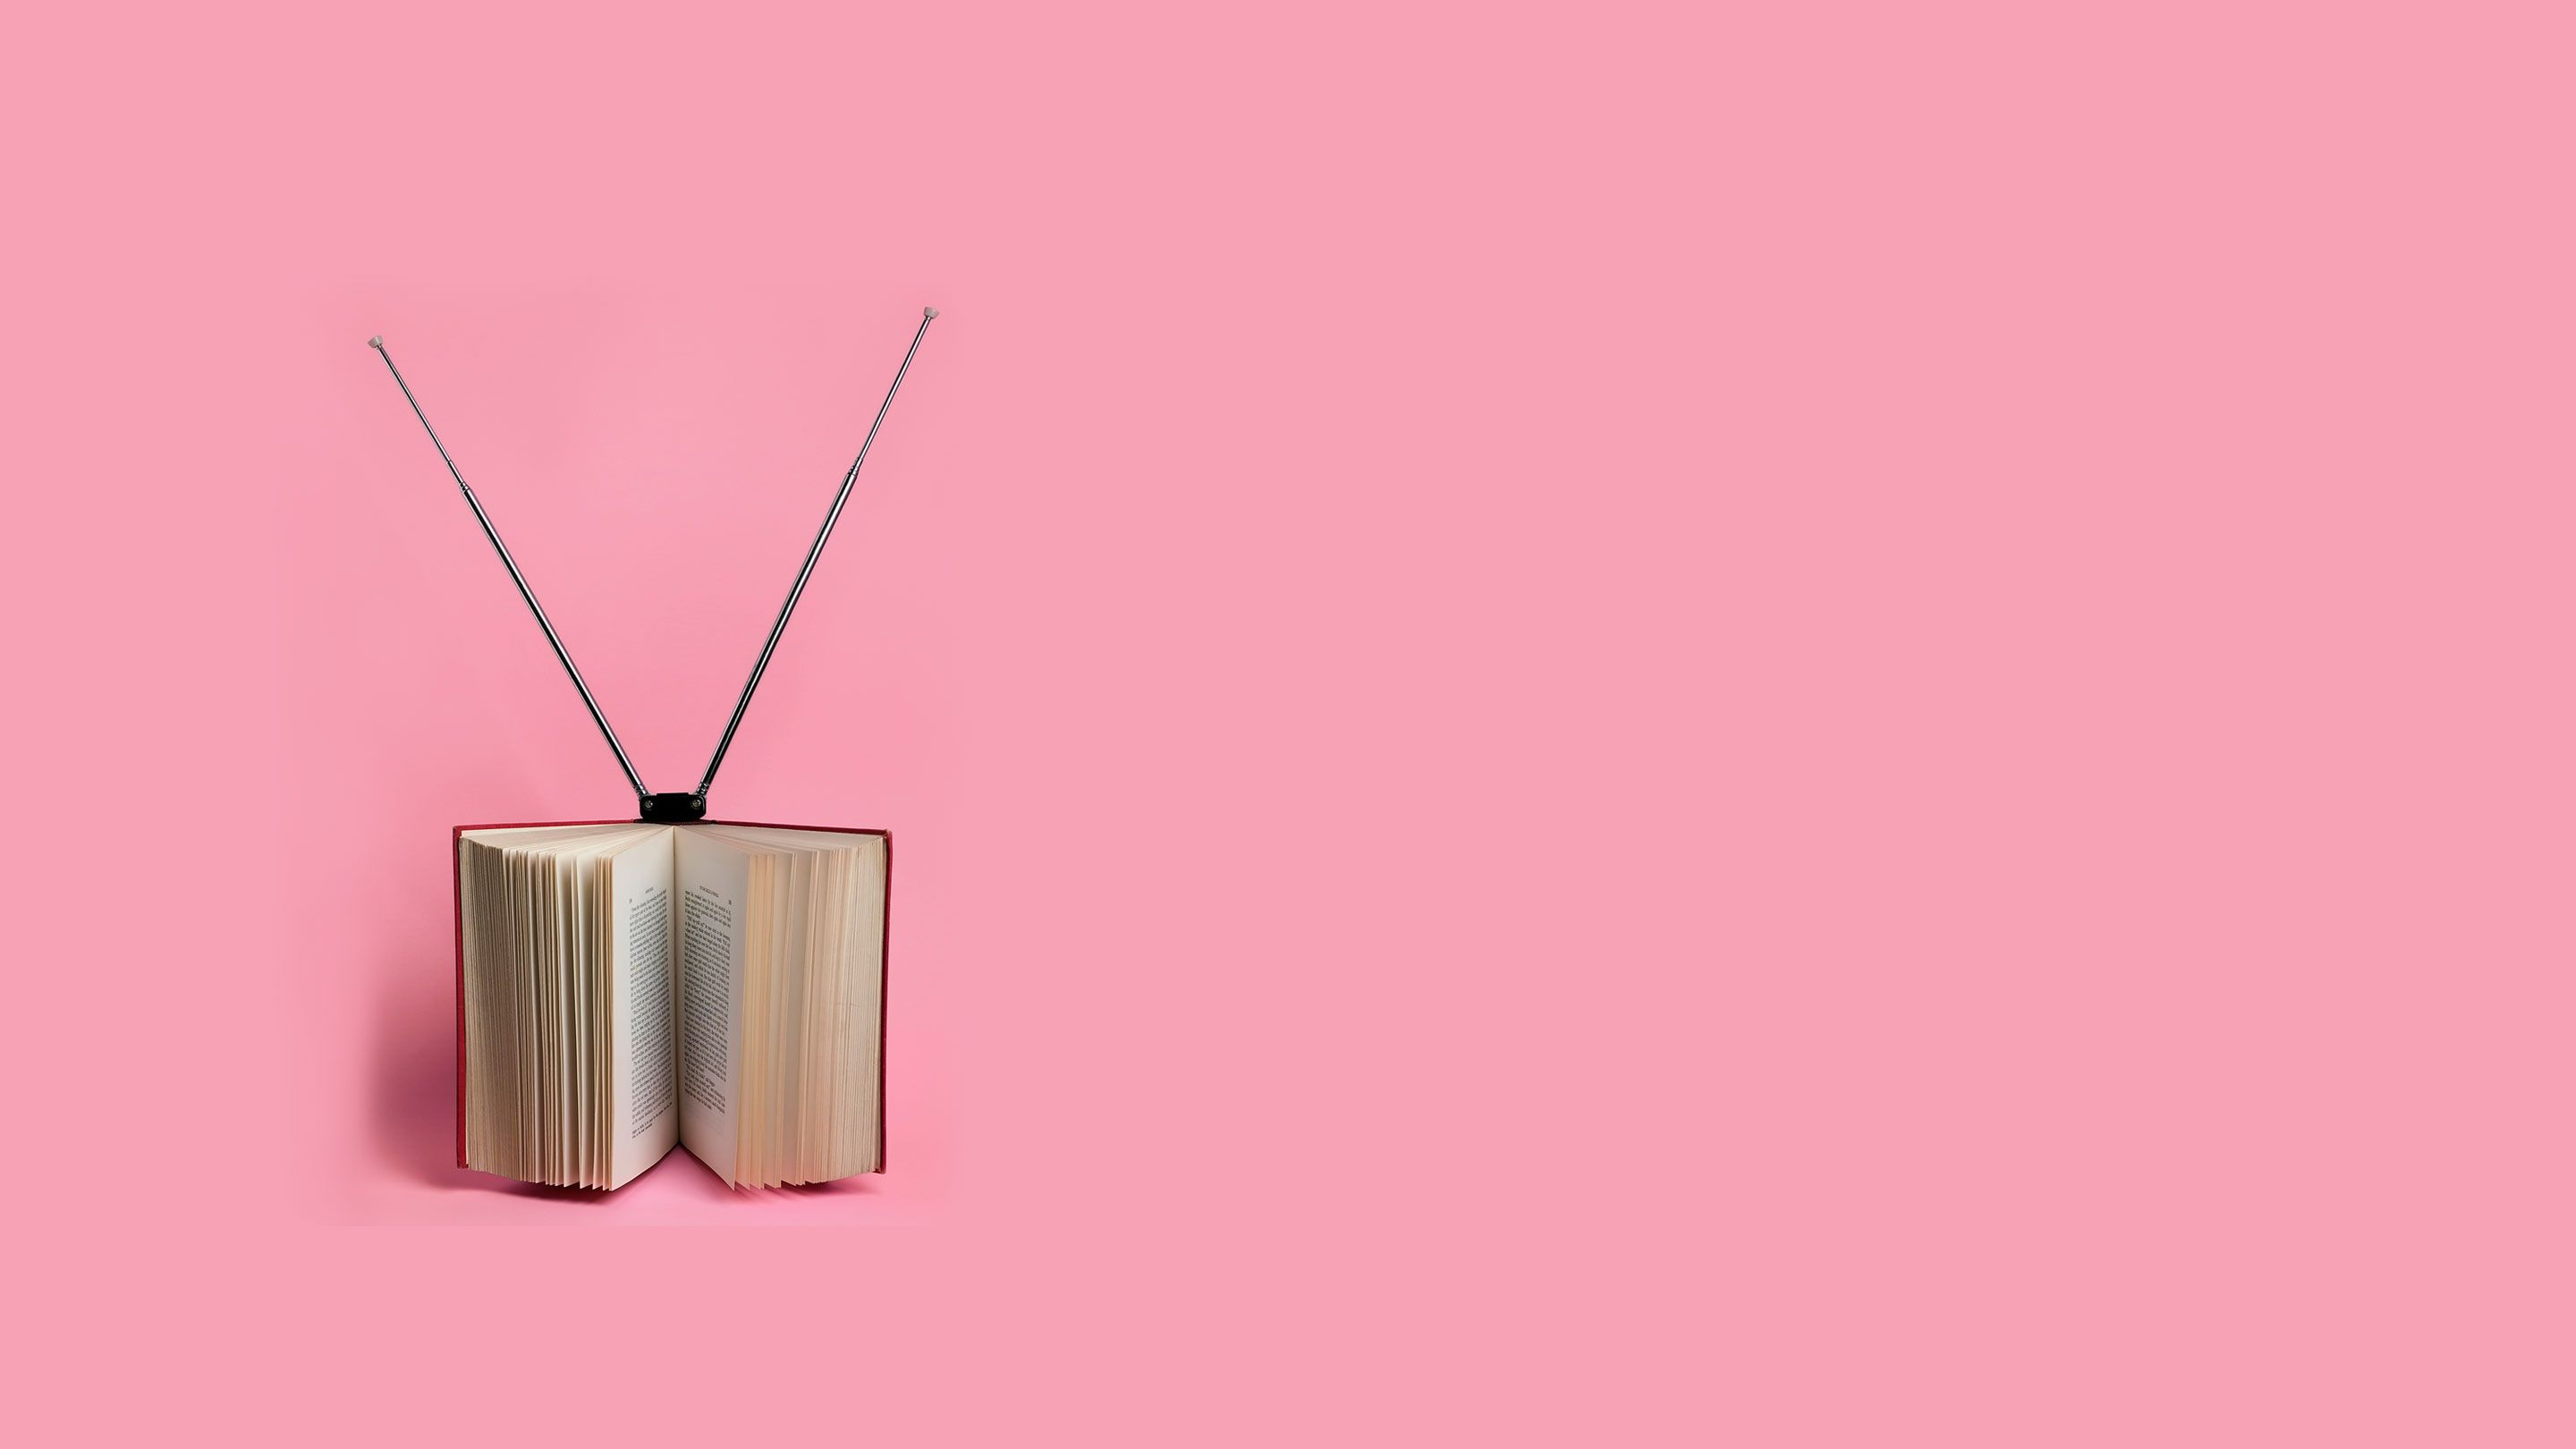 open book with TV antenna on the top